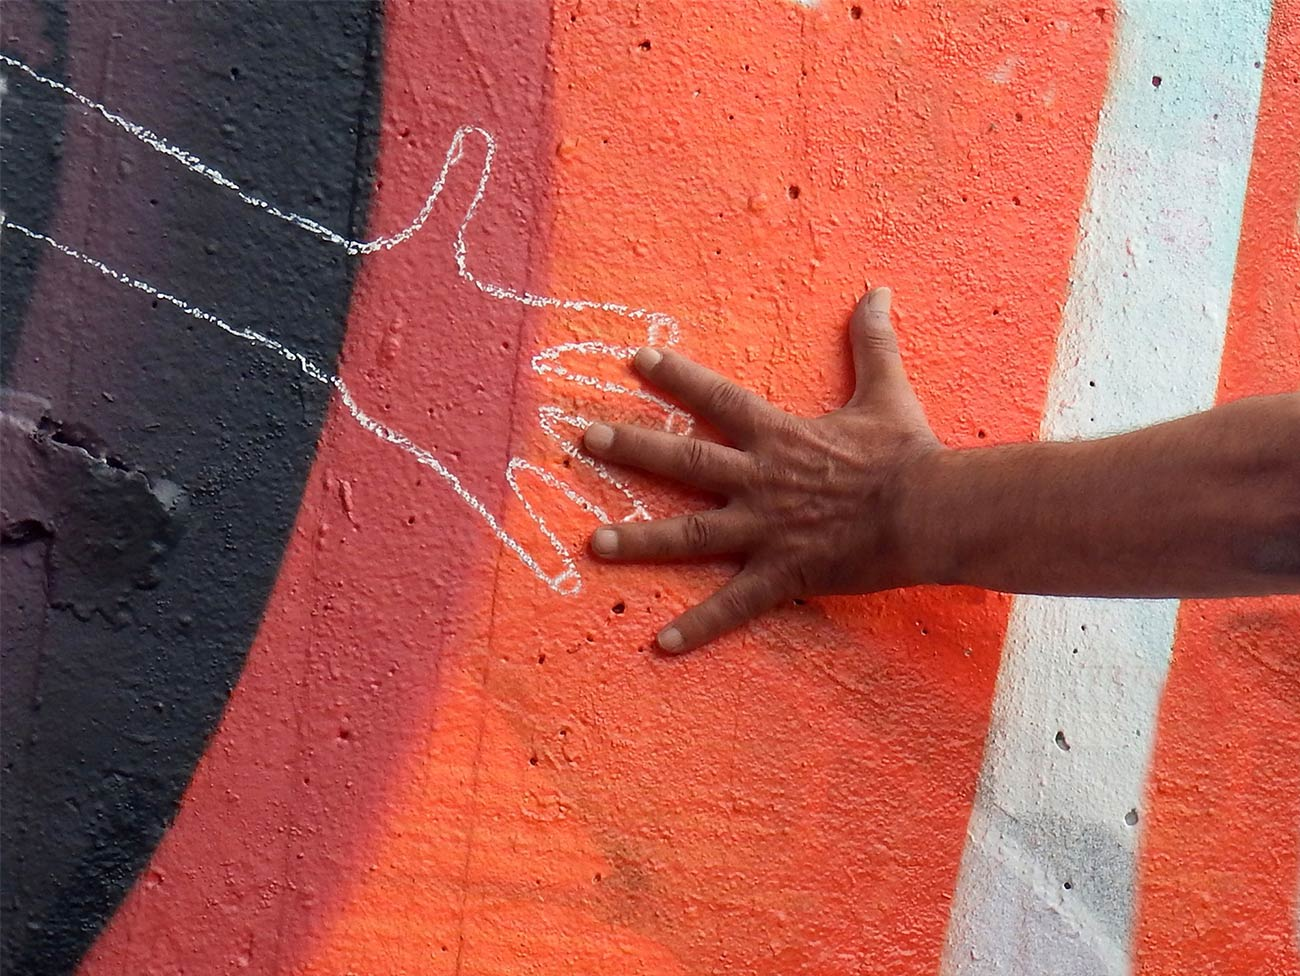 Hand reaching out to chalk outline of a hand on a colorful wall